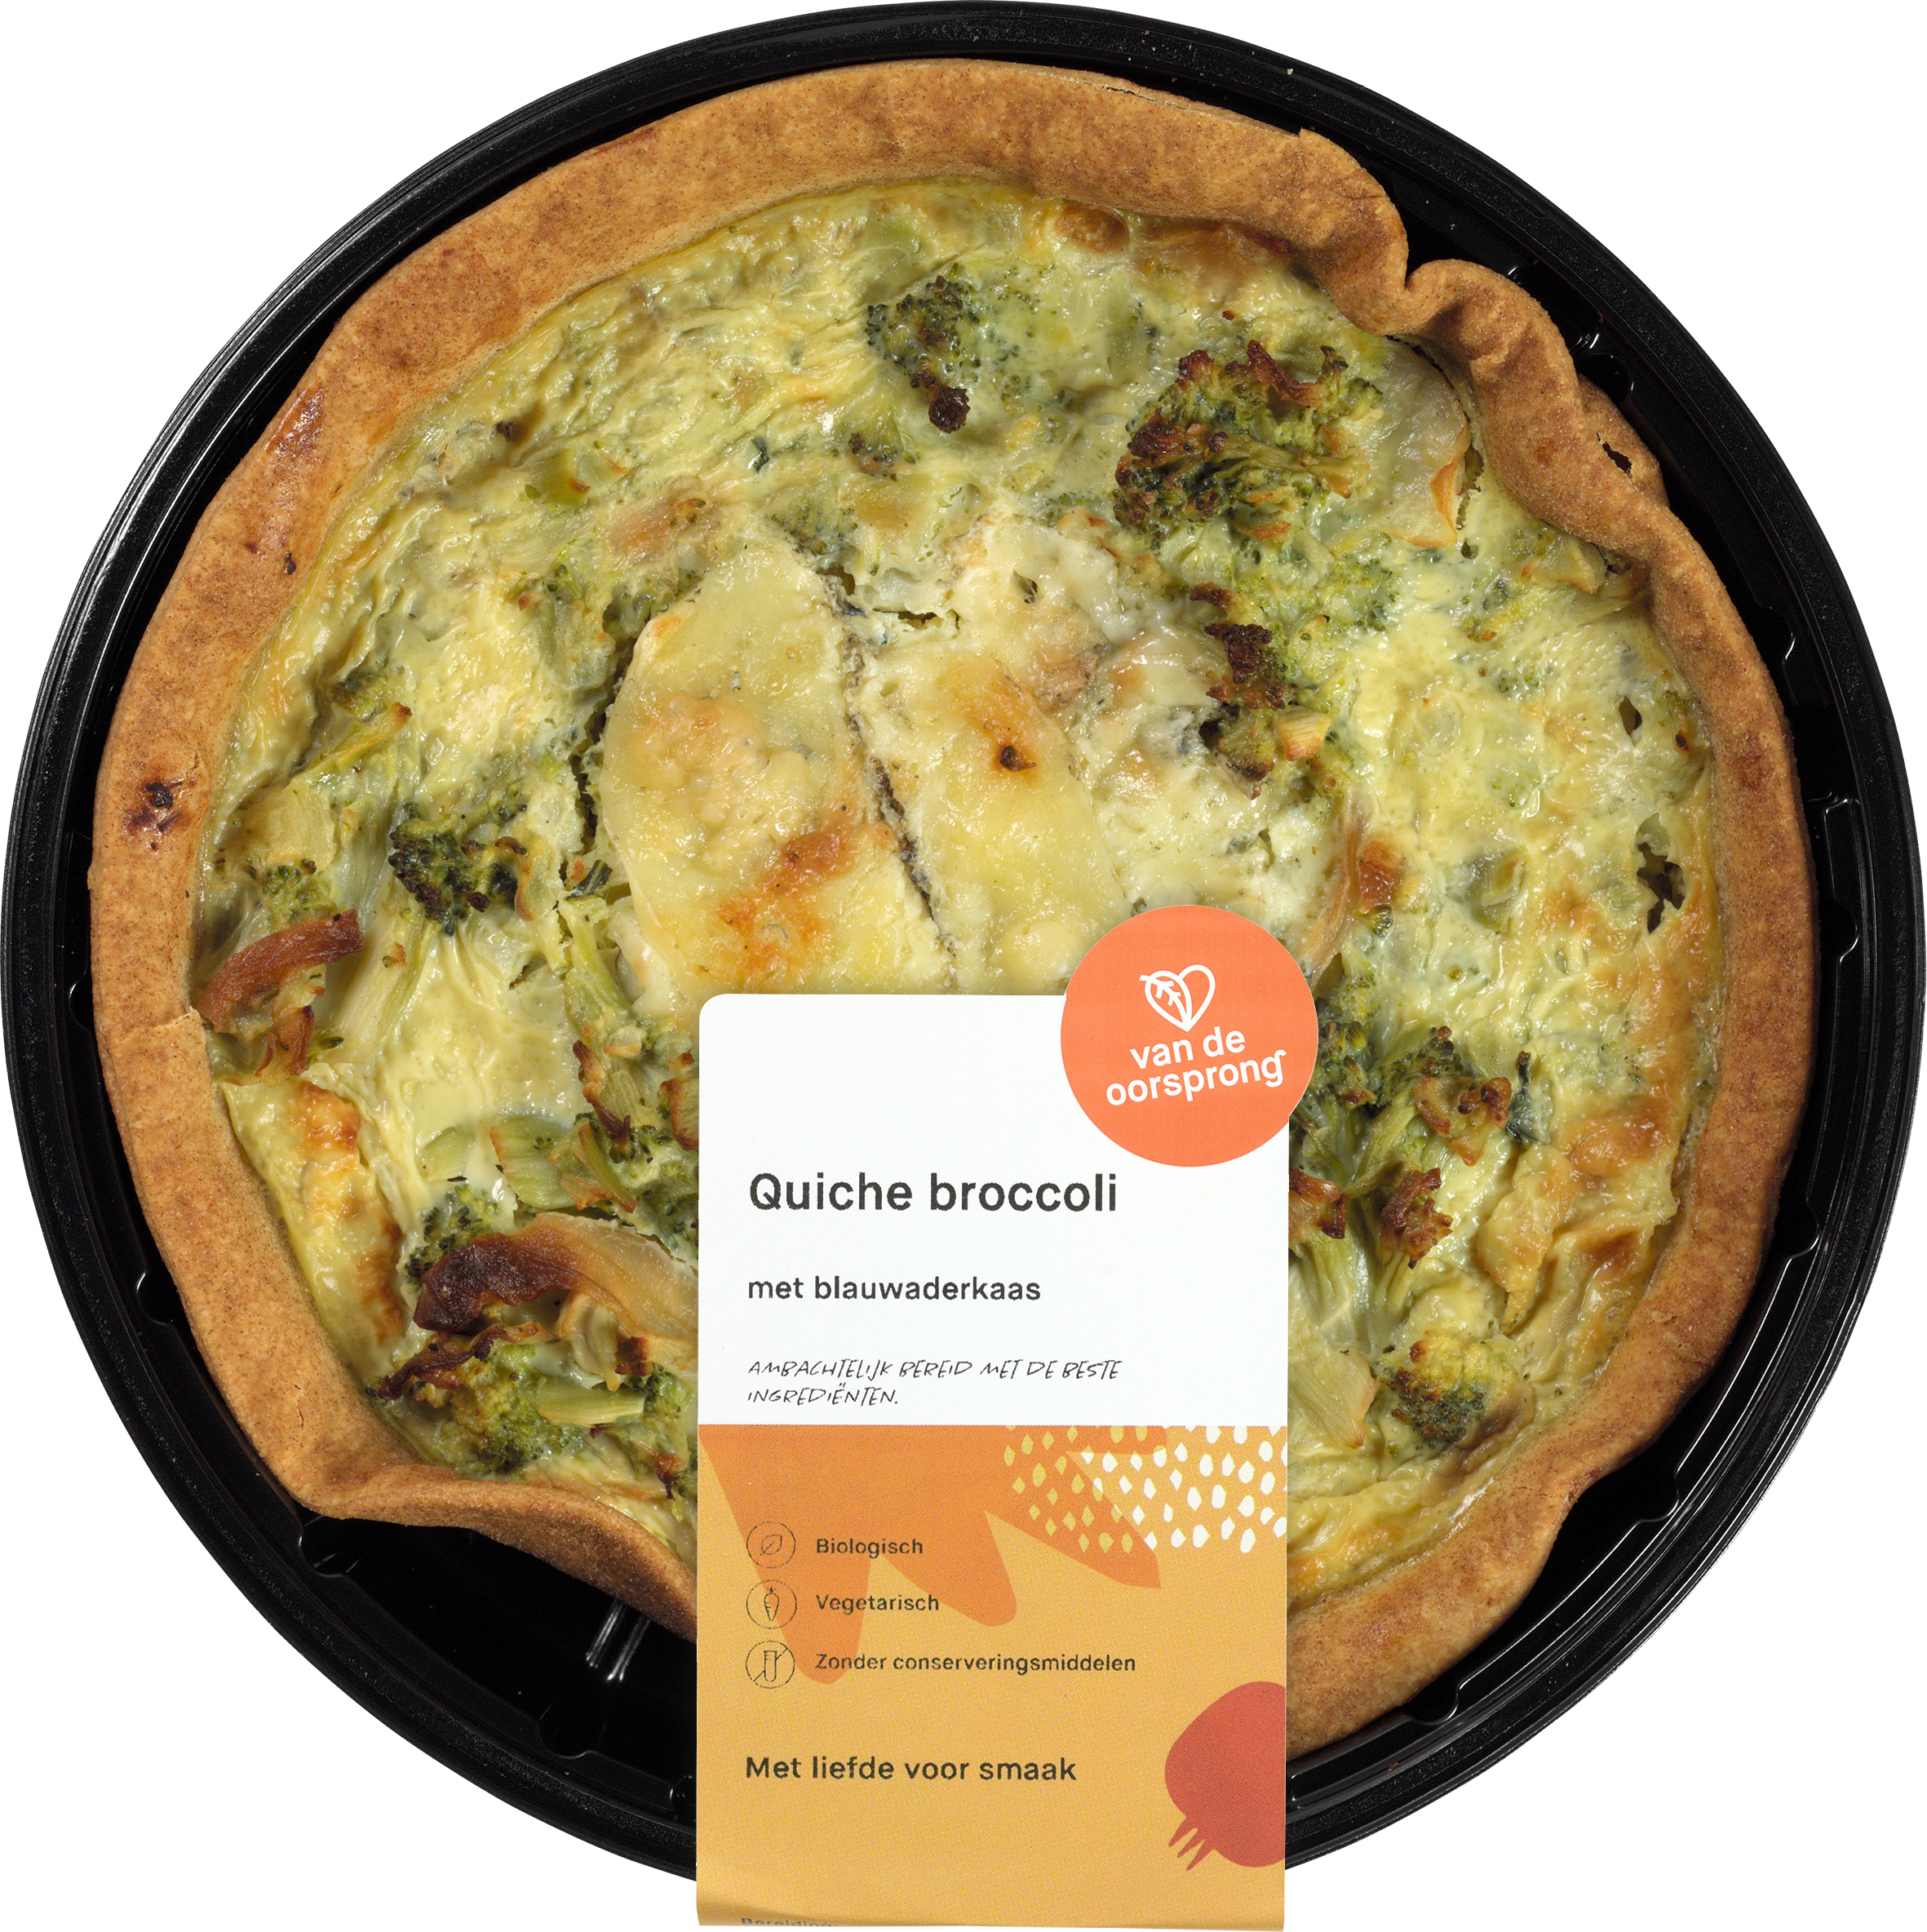 Quiche broccoli en blauwaderkaas